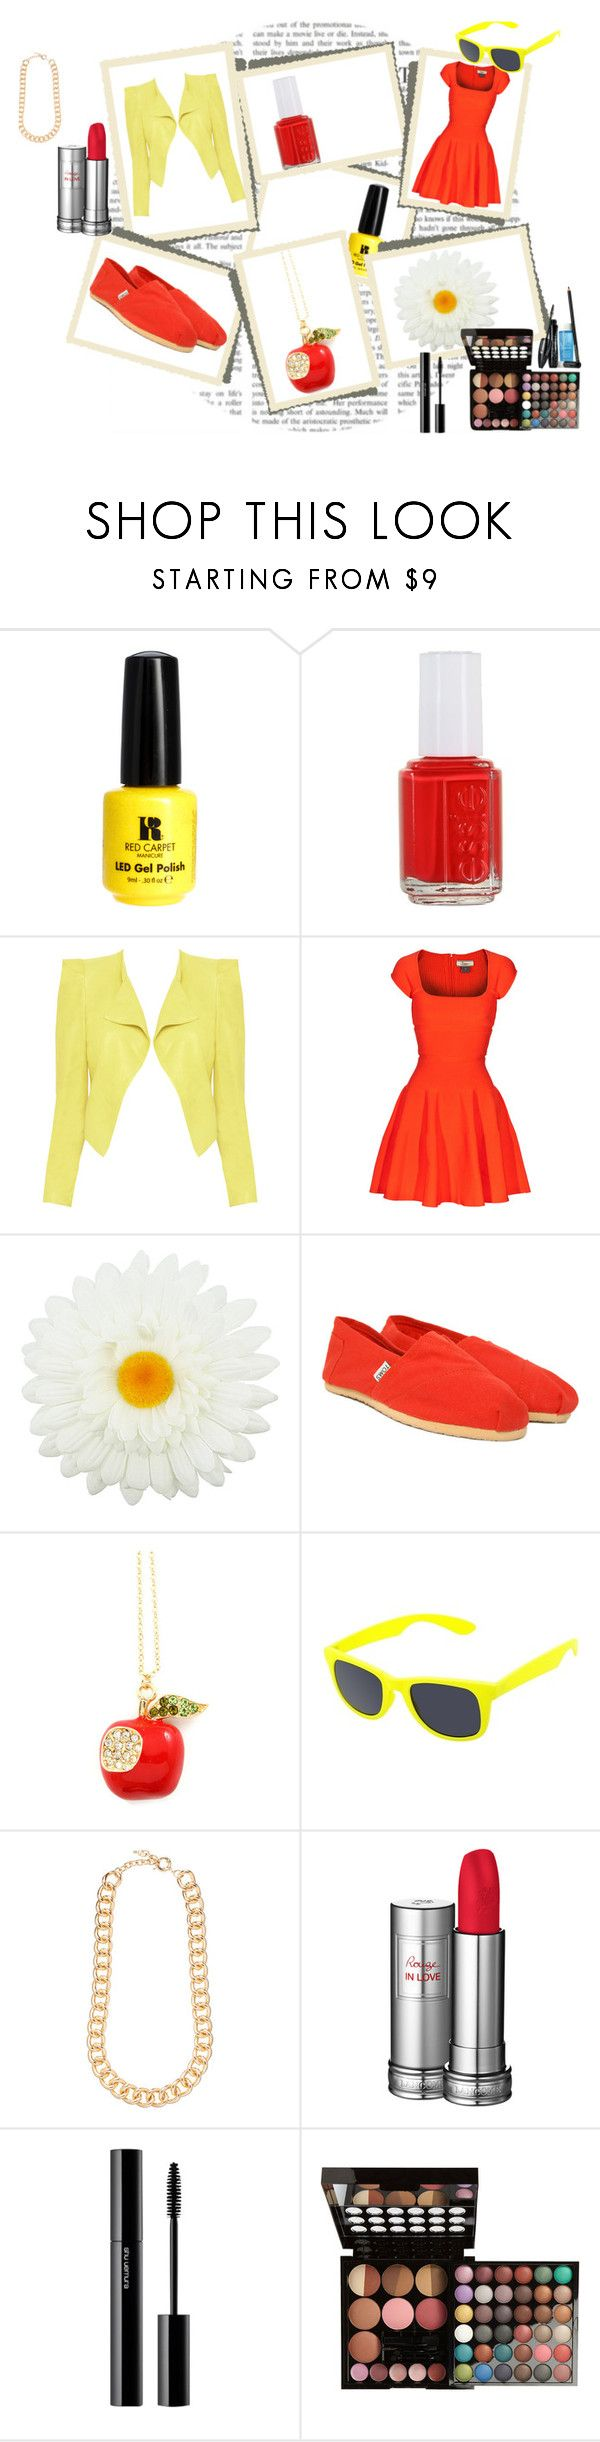 """""""Amity Outfit"""" by lunainthetardis ❤ liked on Polyvore featuring Red Carpet Manicure, Essie, Alice + Olivia, Issa, Topshop, TOMS, Xhilaration, Forever New, Lancôme and shu uemura"""